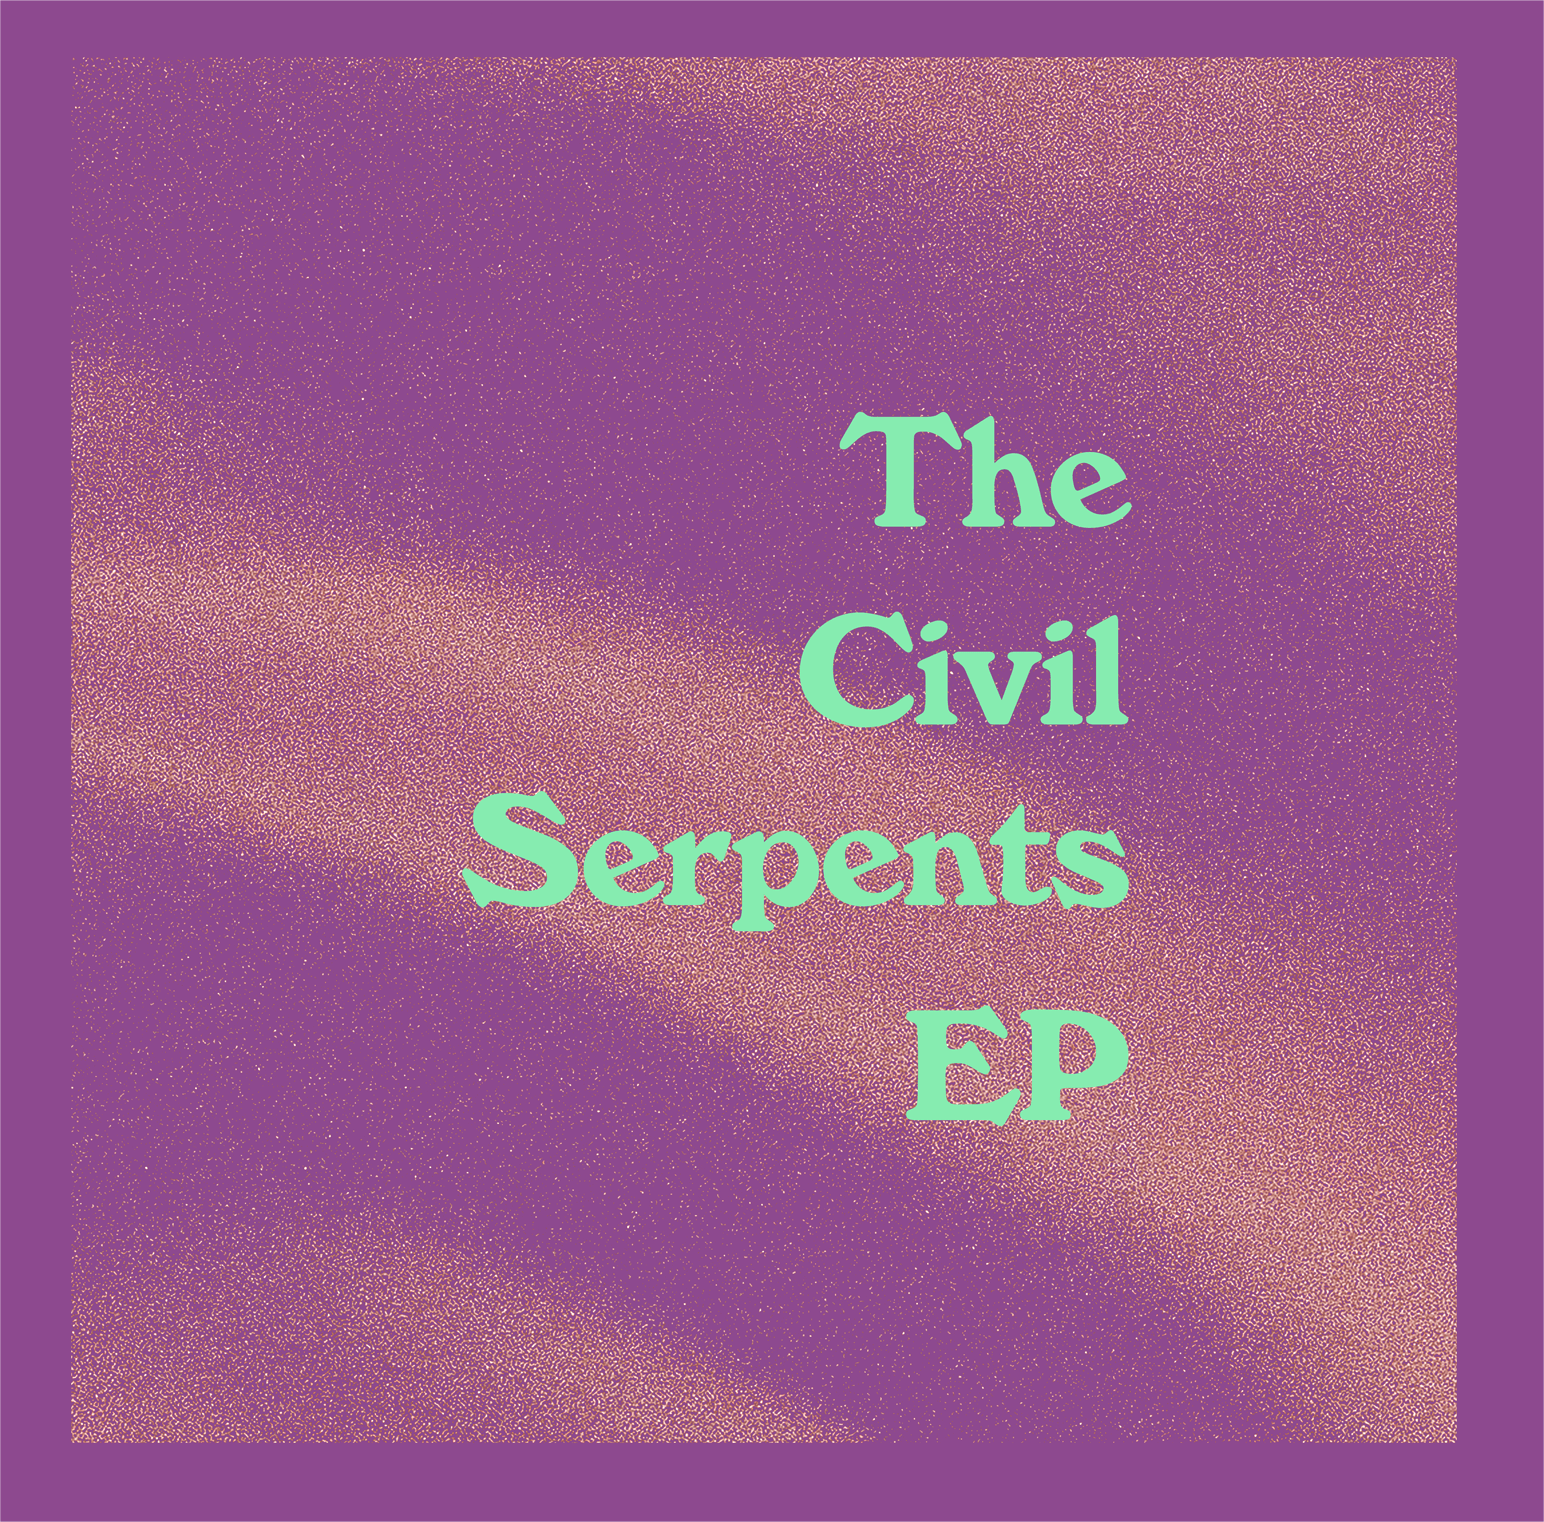 Civil Serpents - The Civil Serpents EP - Released August 2016